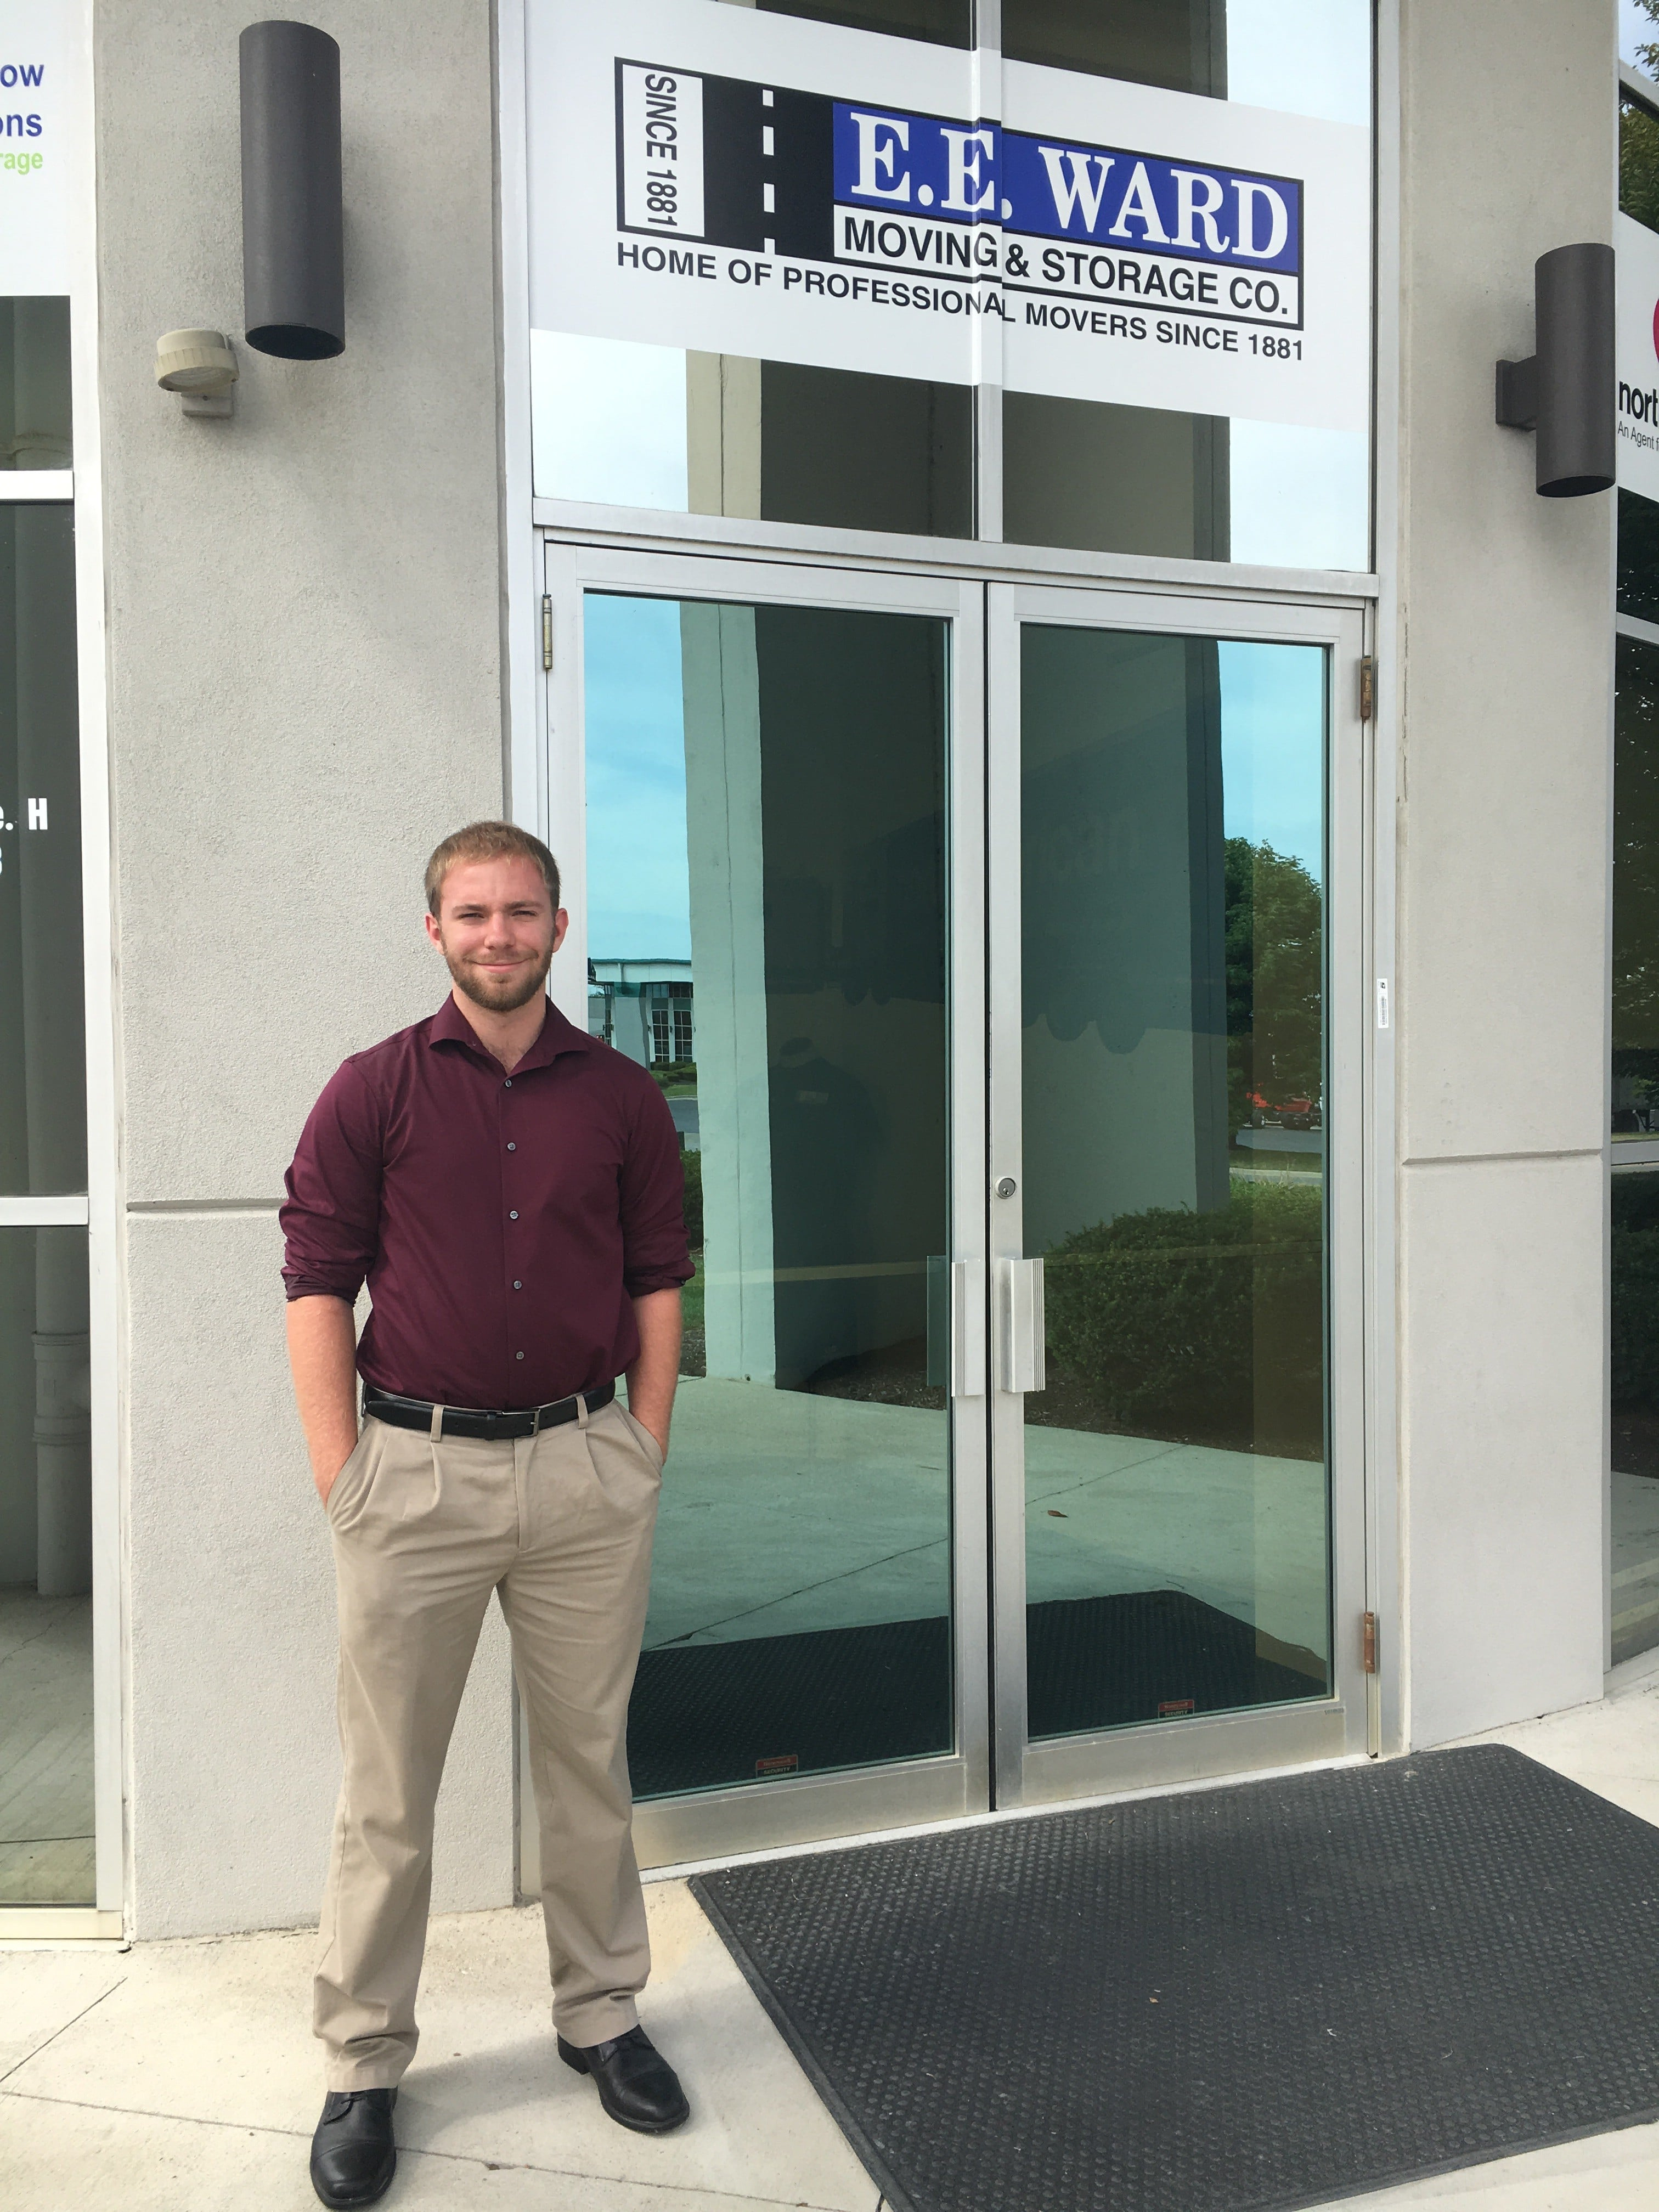 E.E. Ward Welcomes New Operations Management Intern